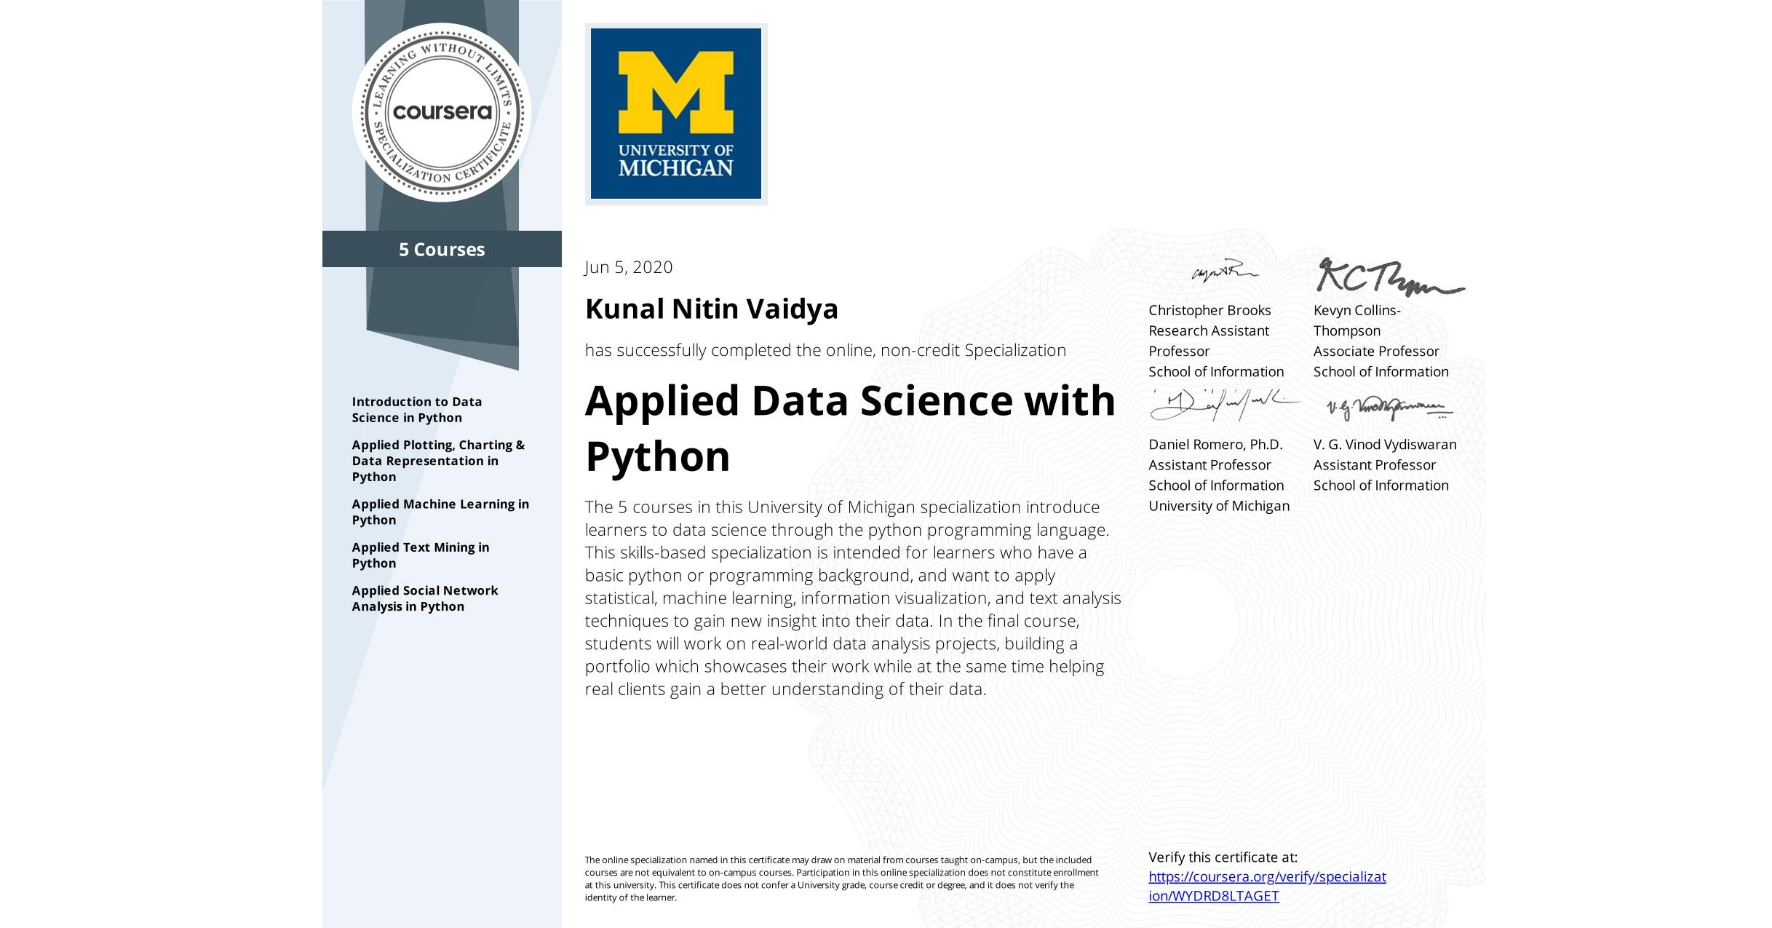 View certificate for Kunal Nitin Vaidya, Applied Data Science with Python, offered through Coursera. The 5 courses in this University of Michigan specialization introduce learners to data science through the python programming language. This skills-based specialization is intended for learners who have a basic python or programming background, and want to apply statistical, machine learning, information visualization, and text analysis techniques to gain new insight into their data. In the final course, students will work on real-world data analysis projects, building a portfolio which showcases their work while at the same time helping real clients gain a better understanding of their data.